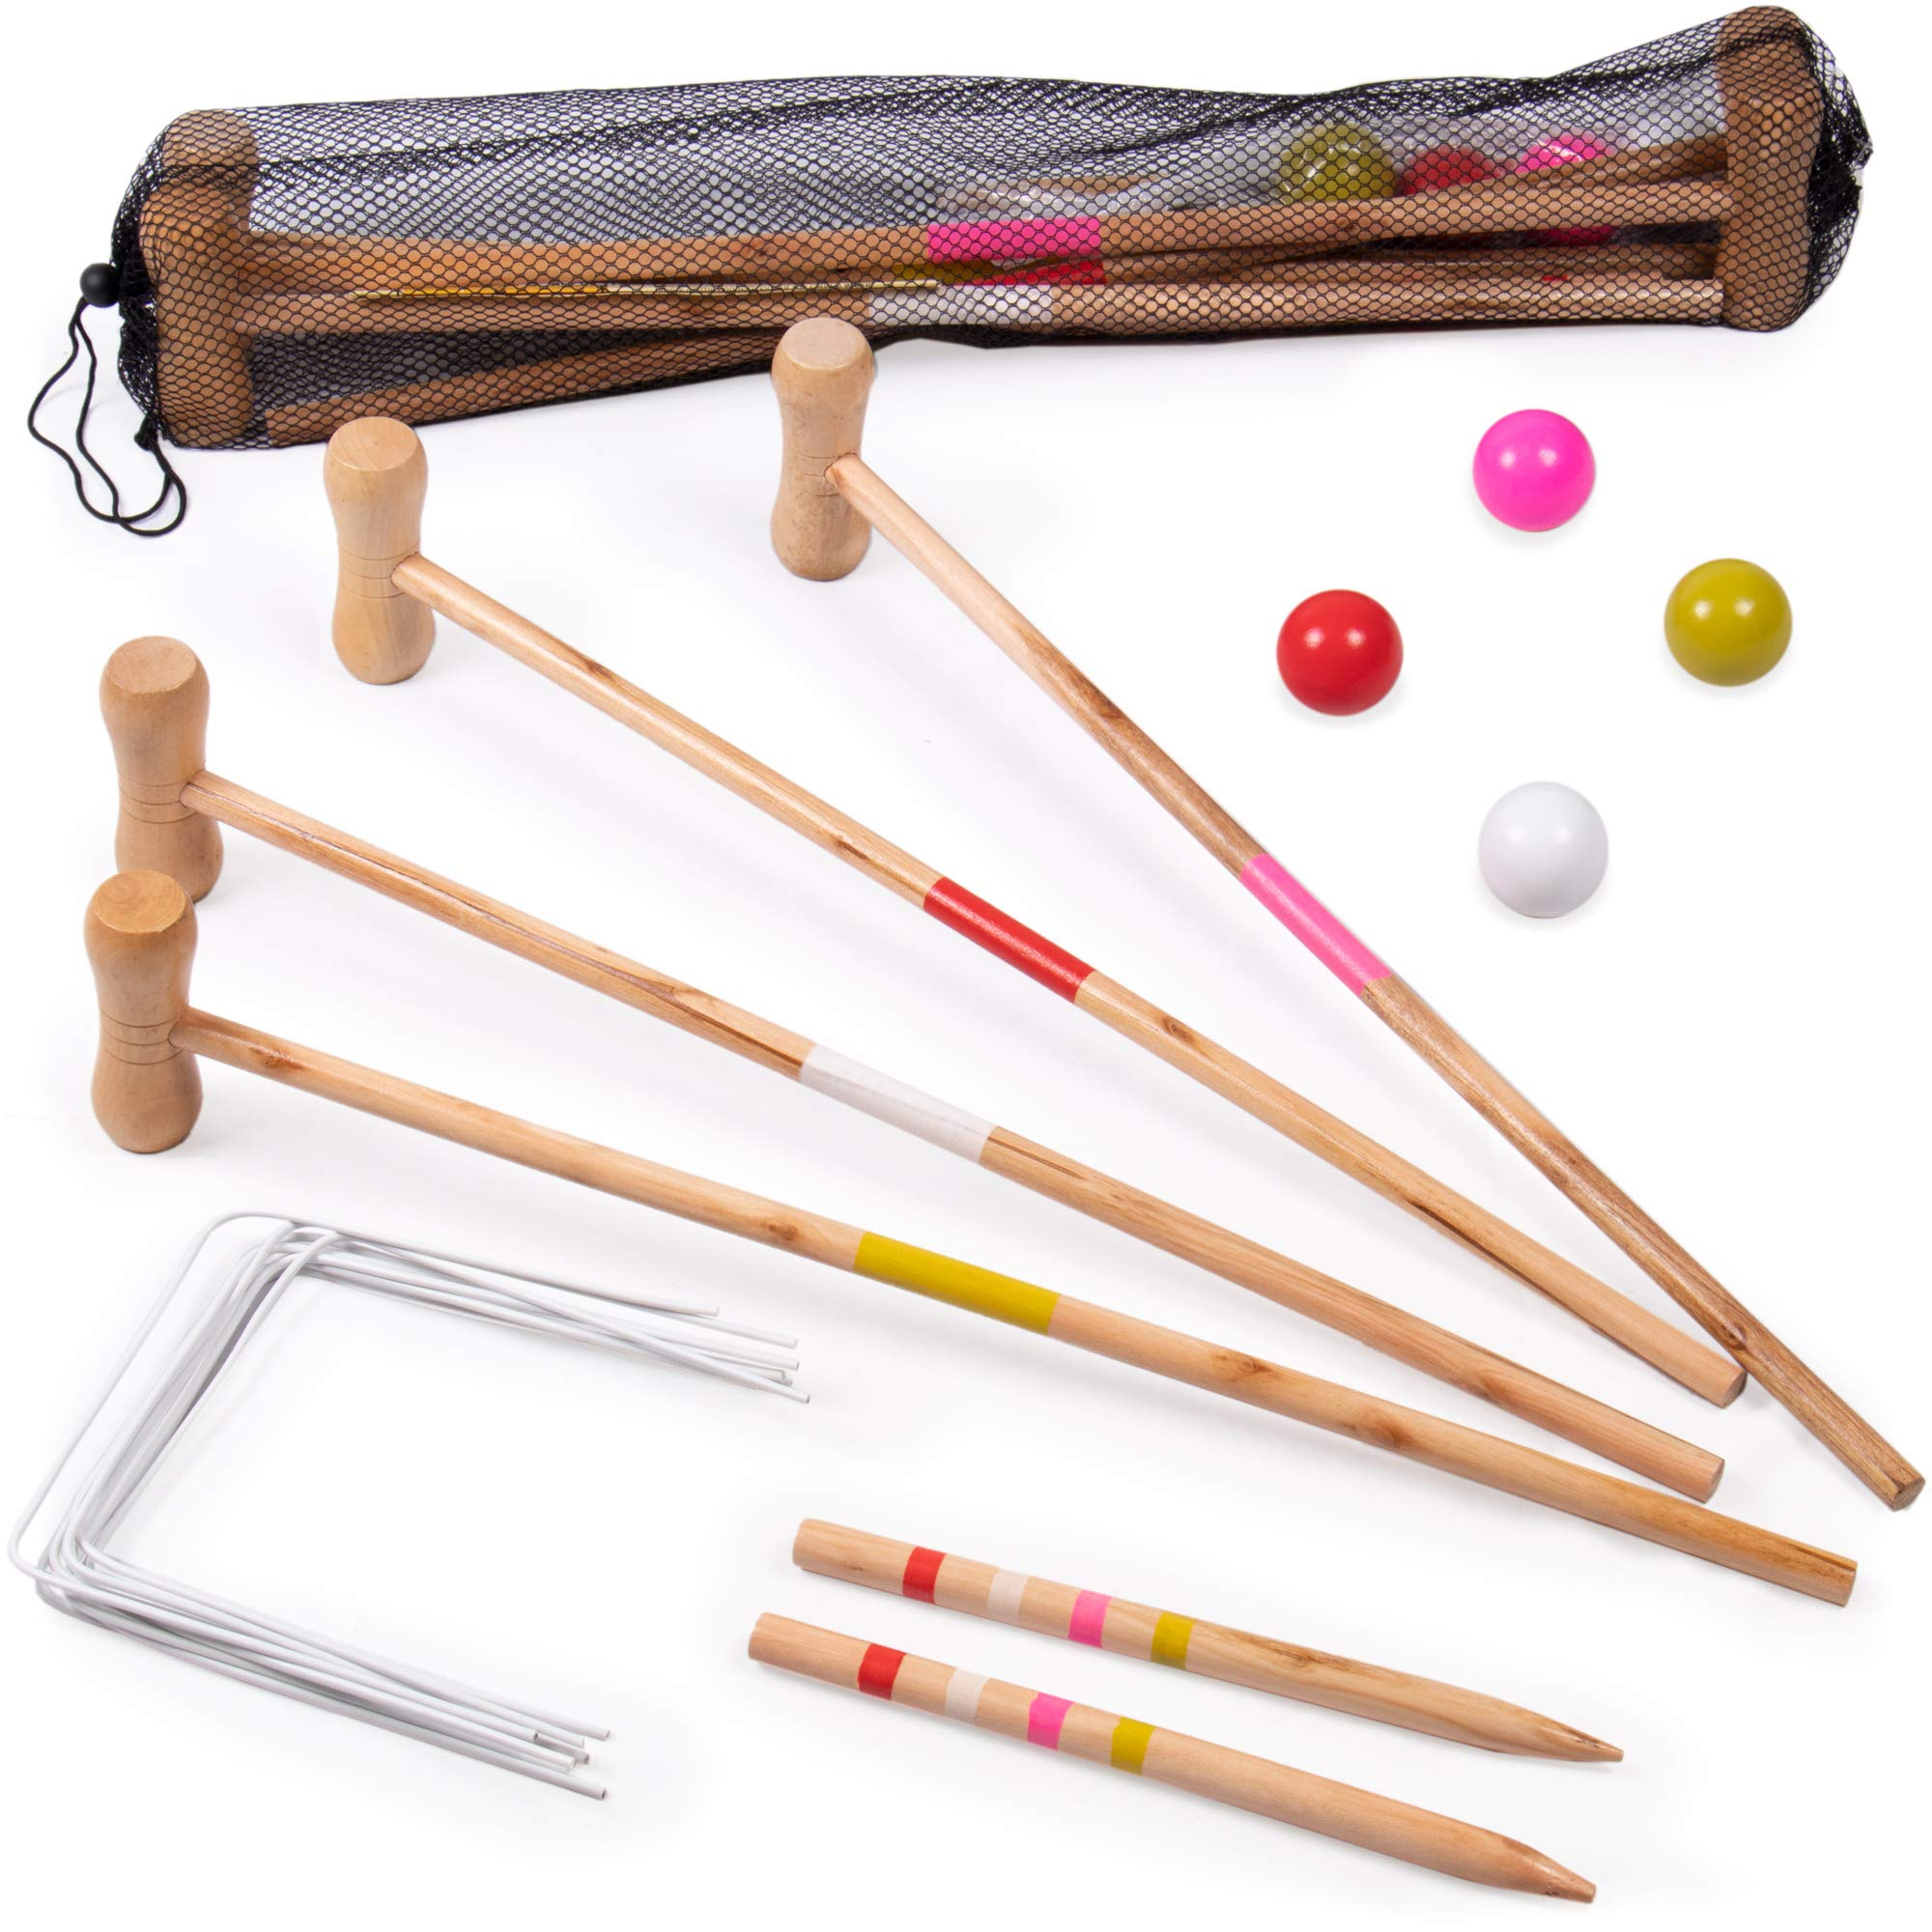 Kids Croquet Set for 4-Players | Classic Outdoor Lawn Game for Children | Great for Birthday Parties, Picnics, BBQs, and More | Comes with Mallets, Balls, Wickets, and a Carrying Bag for Portability by Crown Sporting Goods (Image #1)